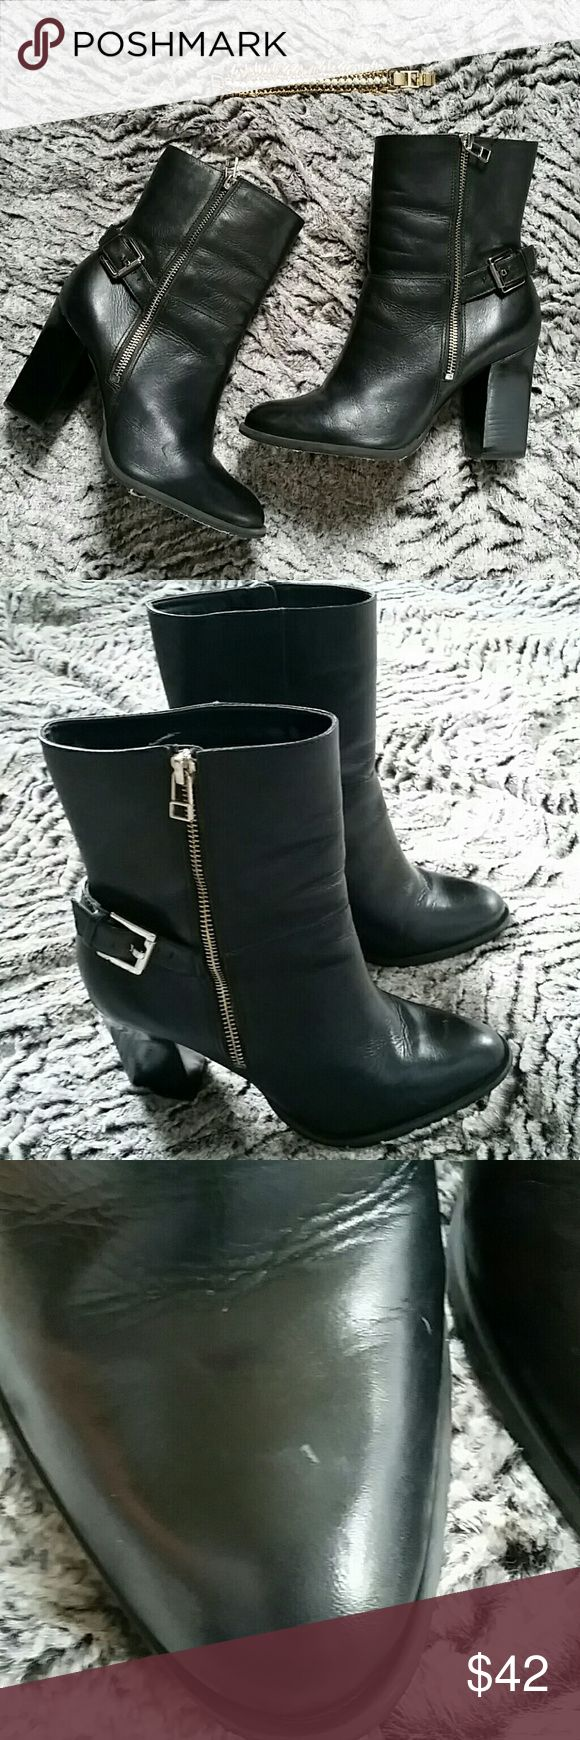 Shoestock Brazil Boots Stunning black leather boots with chunky heels. Zips up the outer ankle.  Buckle embellishment.  Small scuff on right toe (pic 3) but otherwise excellent condition.  Bottoms were treated with a protective layer which is starting to peel.  Heel height is 3.25 inches.  Boot height is 9.5 inches. Shoestock Shoes Heeled Boots